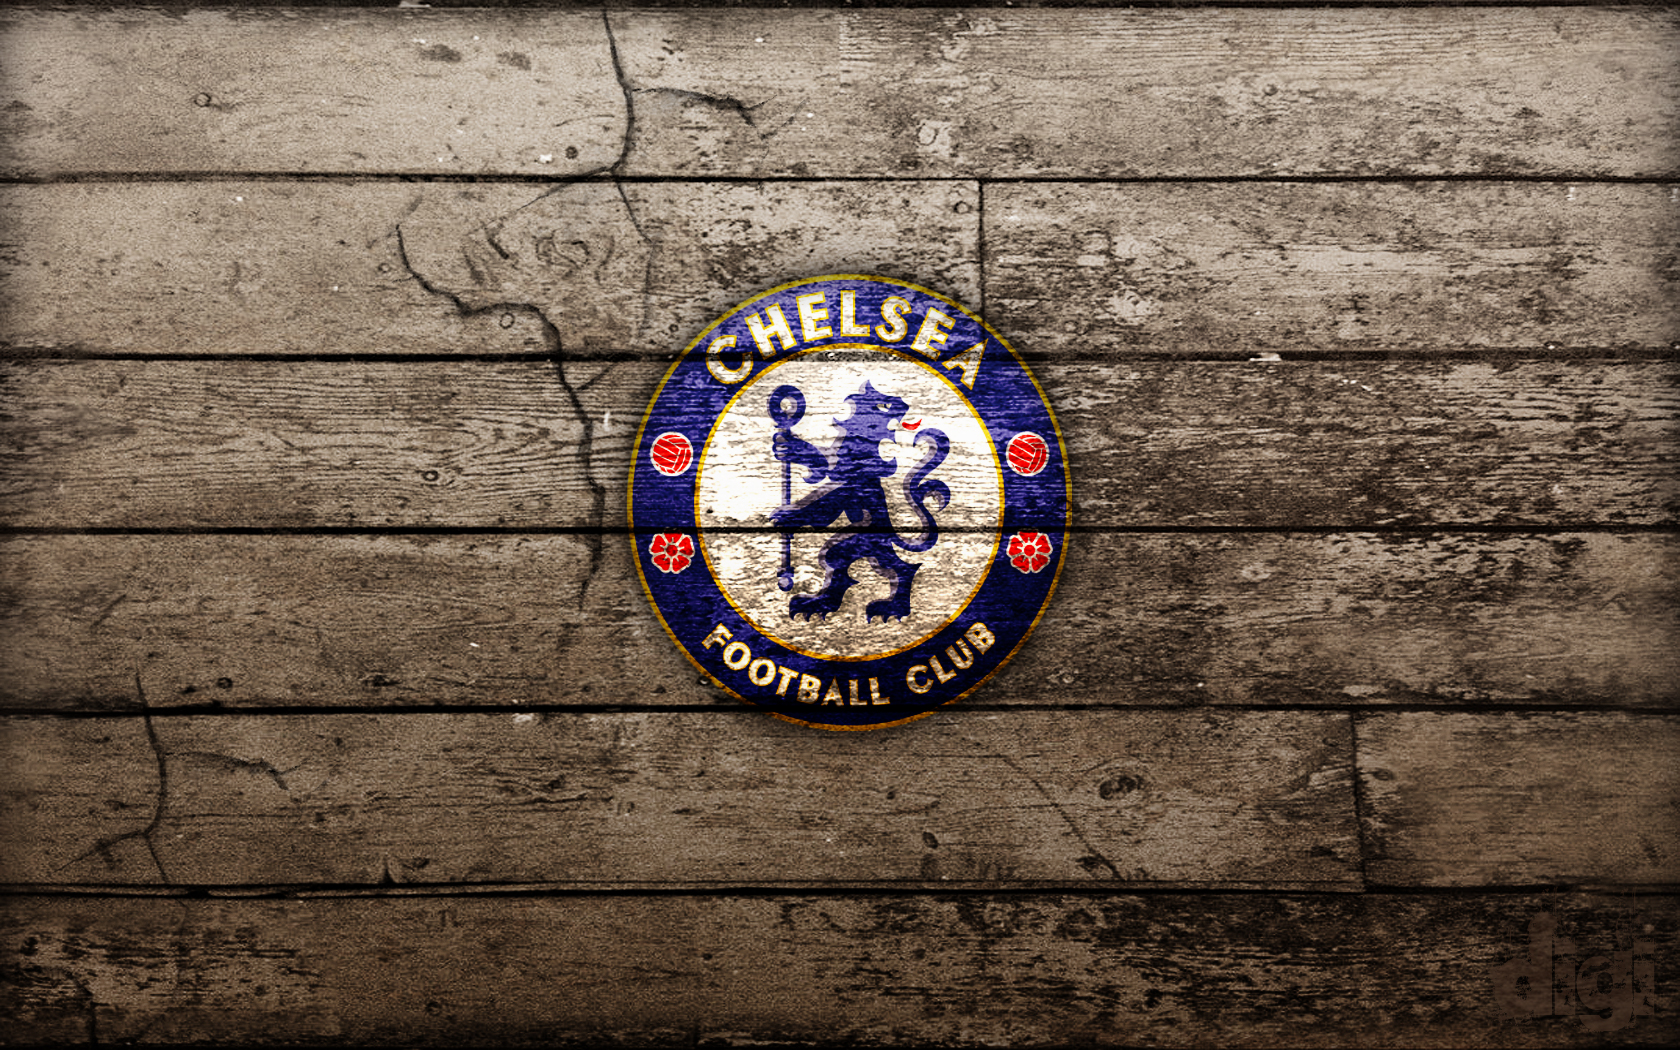 Awesome Chelsea FC Wallpaper That Will Revitalize Any Desktop Thomas 1680x1050